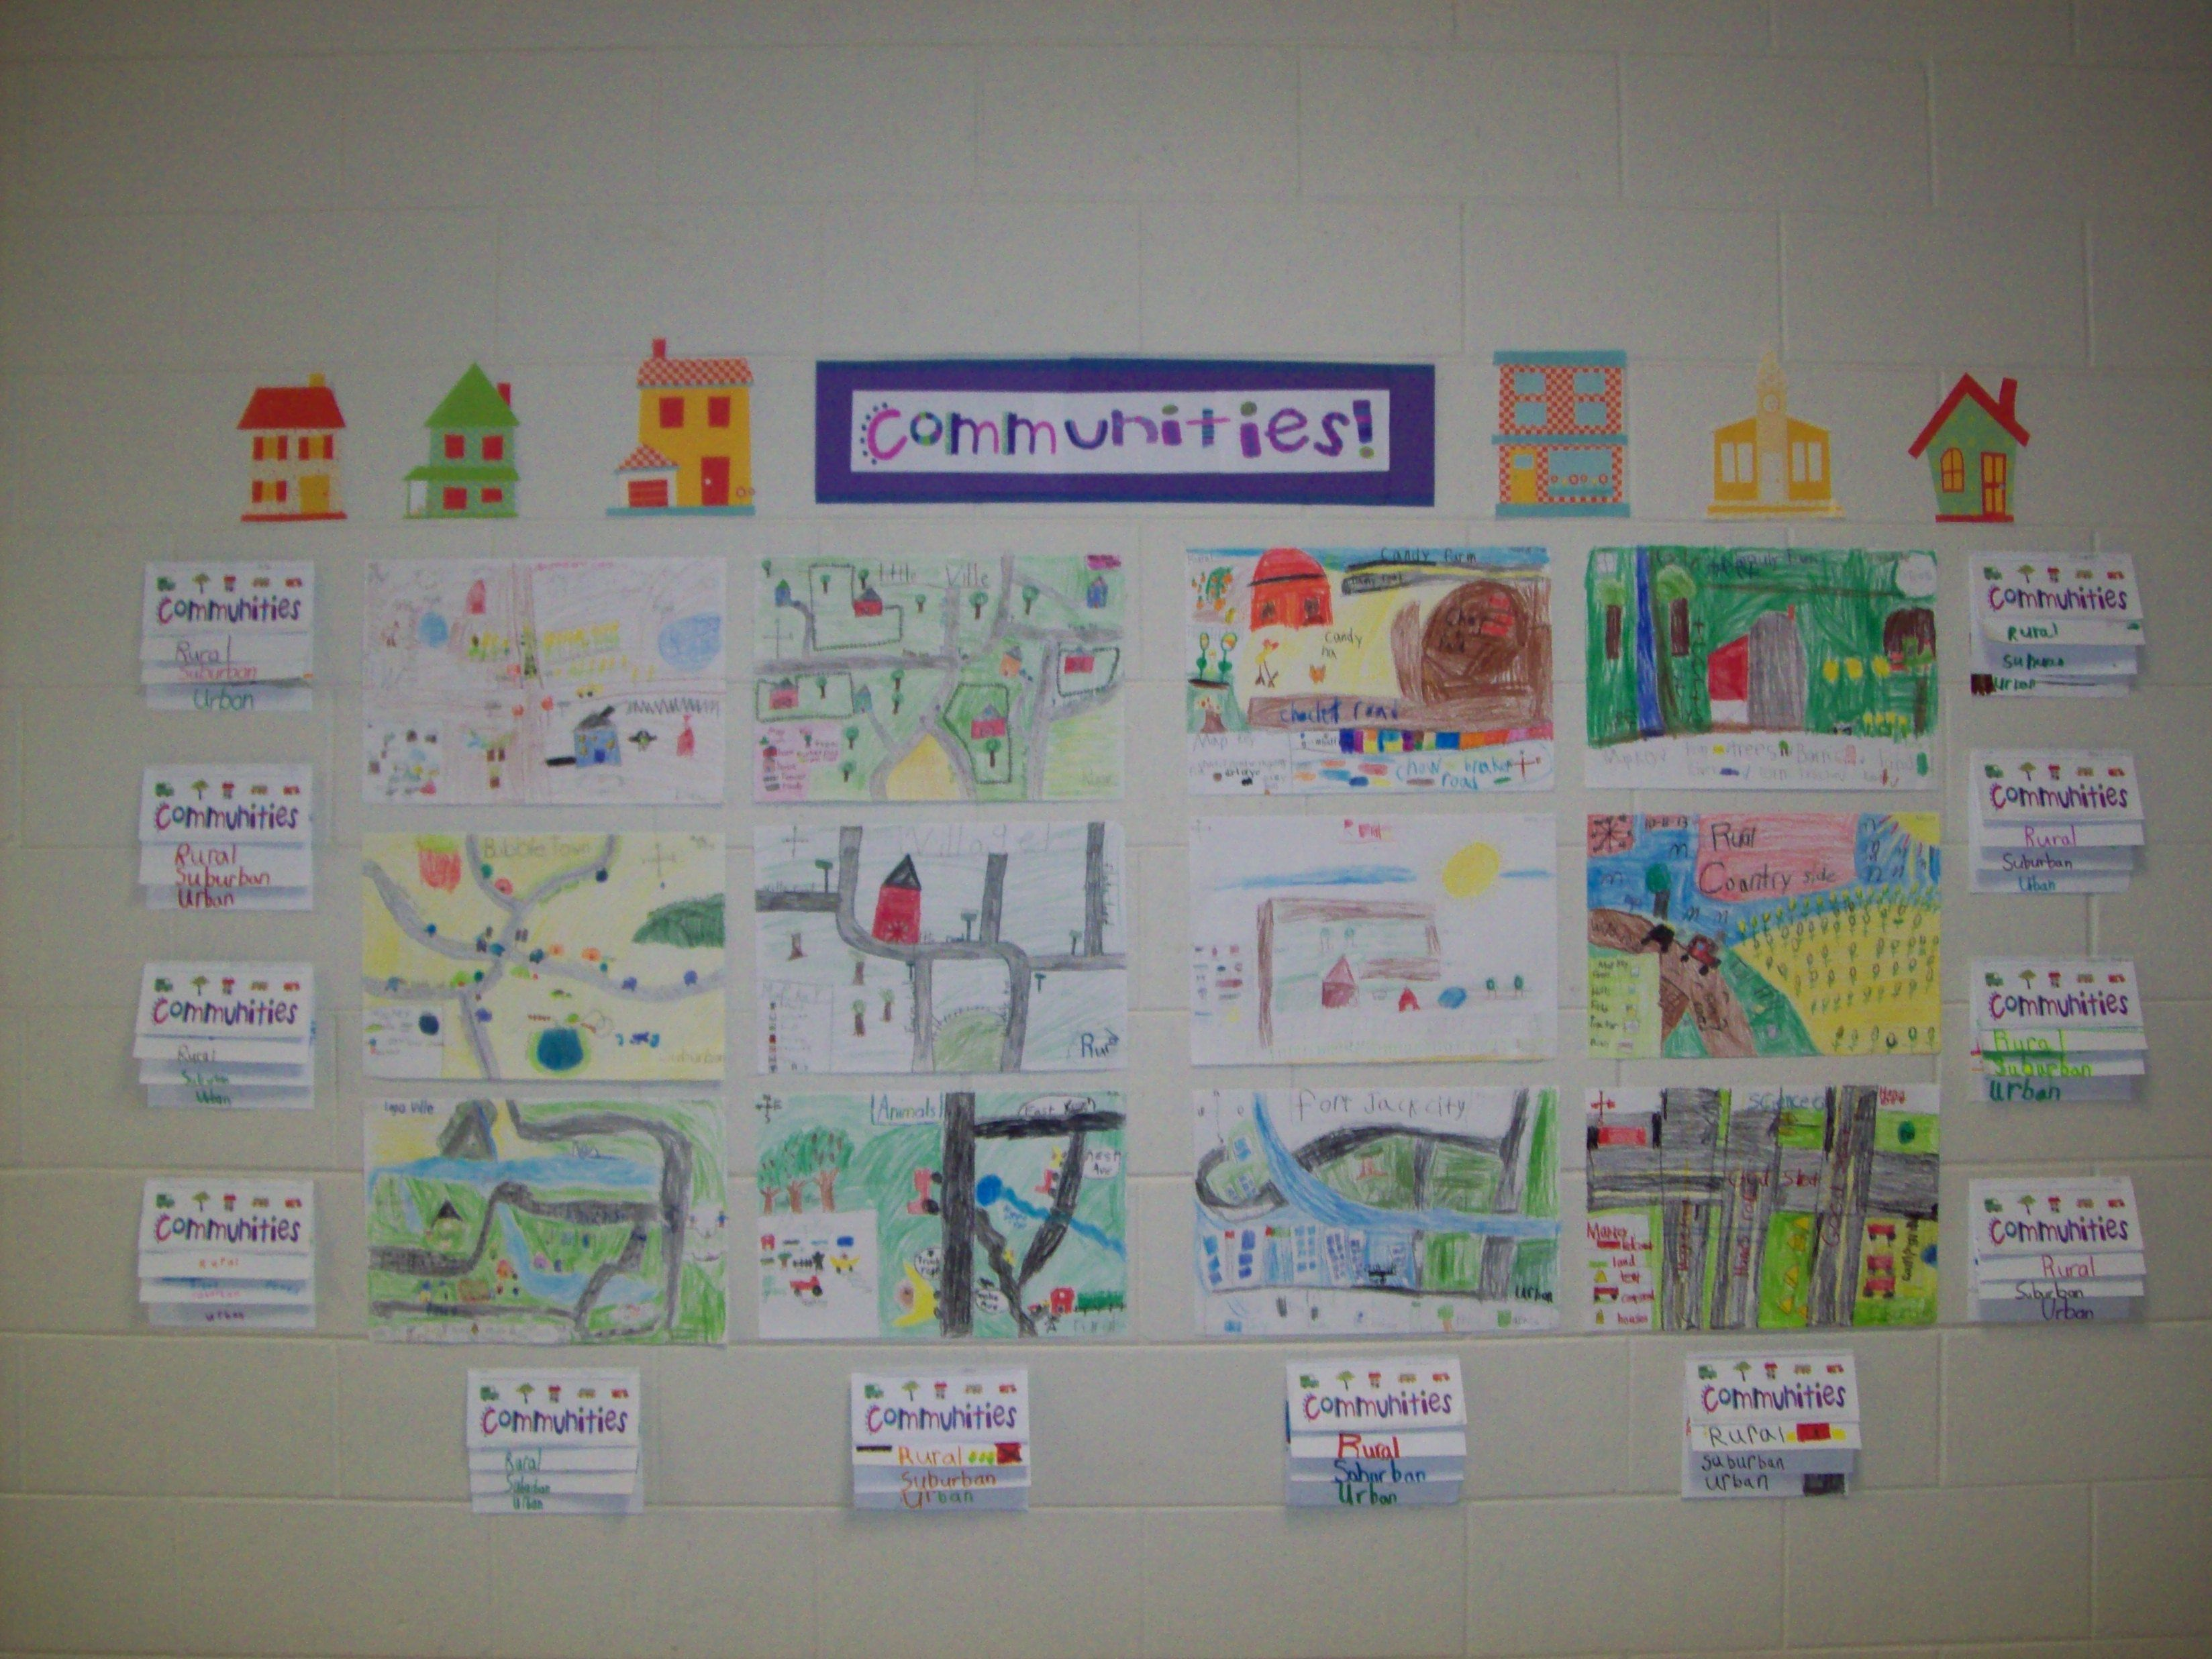 Community Map Project The Students Made Their Own Maps